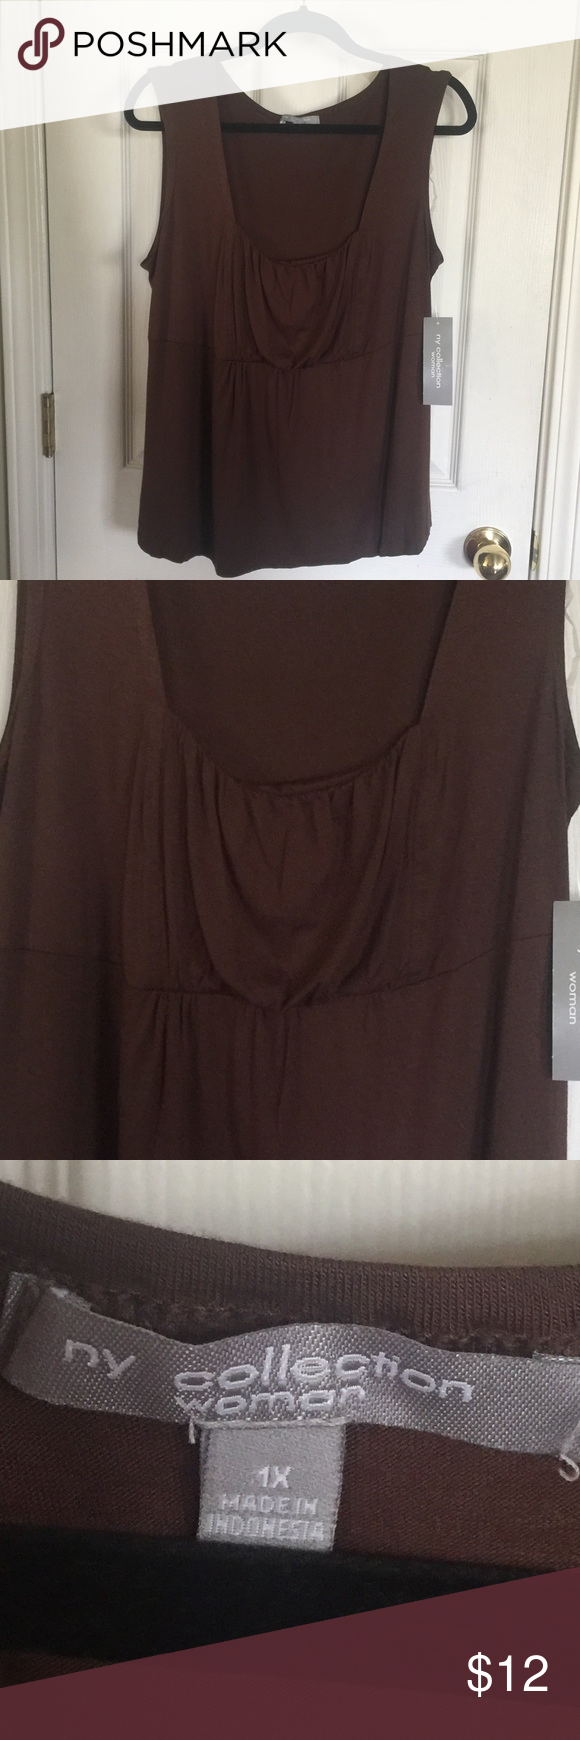 7f9da3d7b664 NEW lightweight chocolate brown top This material is so soft!! Cute pleats  noted in photo. NY Collection Tops